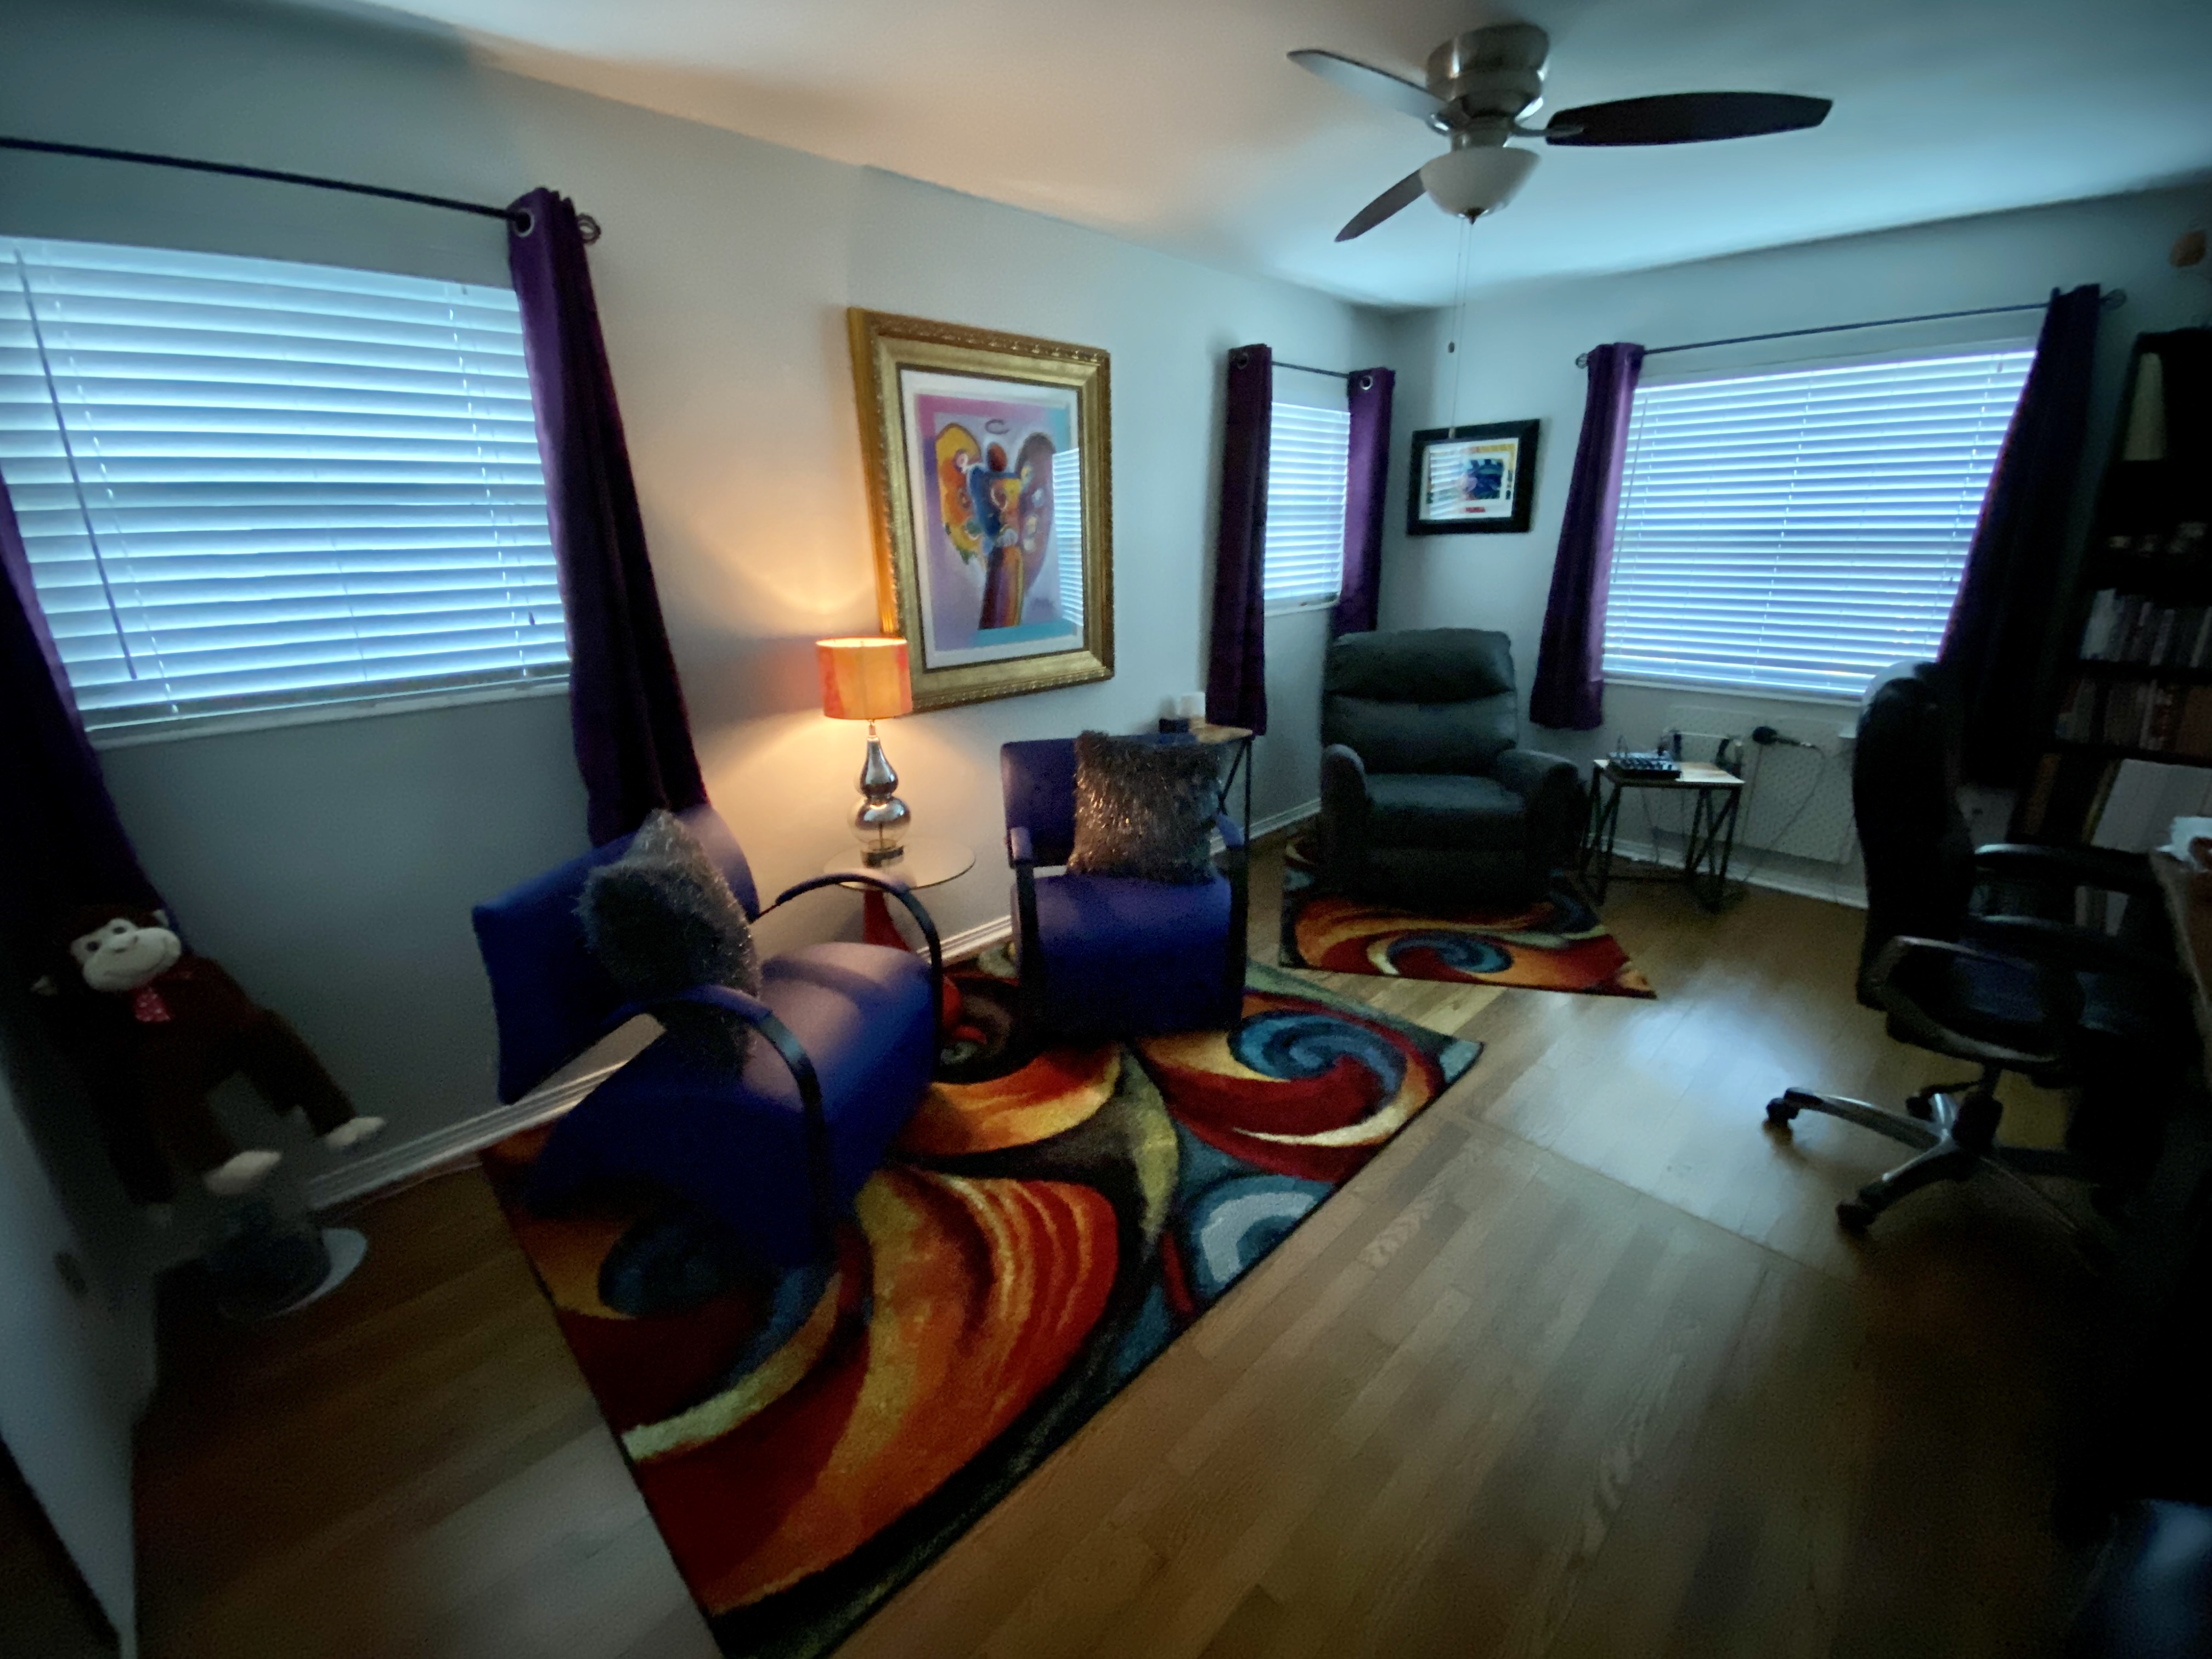 Our office at Wings Hypnosis, colorful, yet warm and inviting.